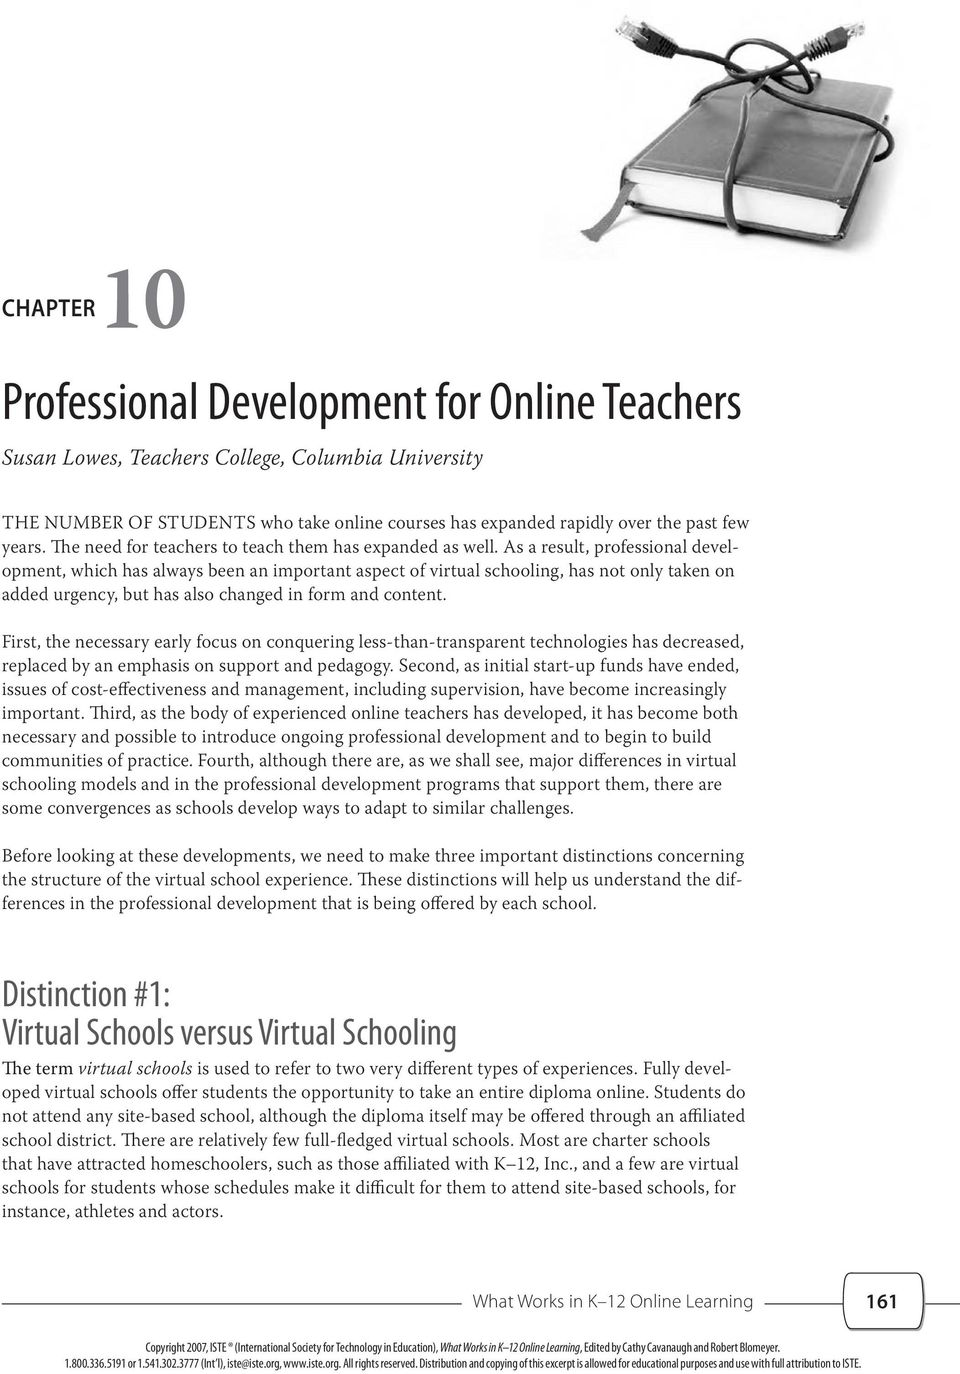 As a result, professional development, which has always been an important aspect of virtual schooling, has not only taken on added urgency, but has also changed in form and content.